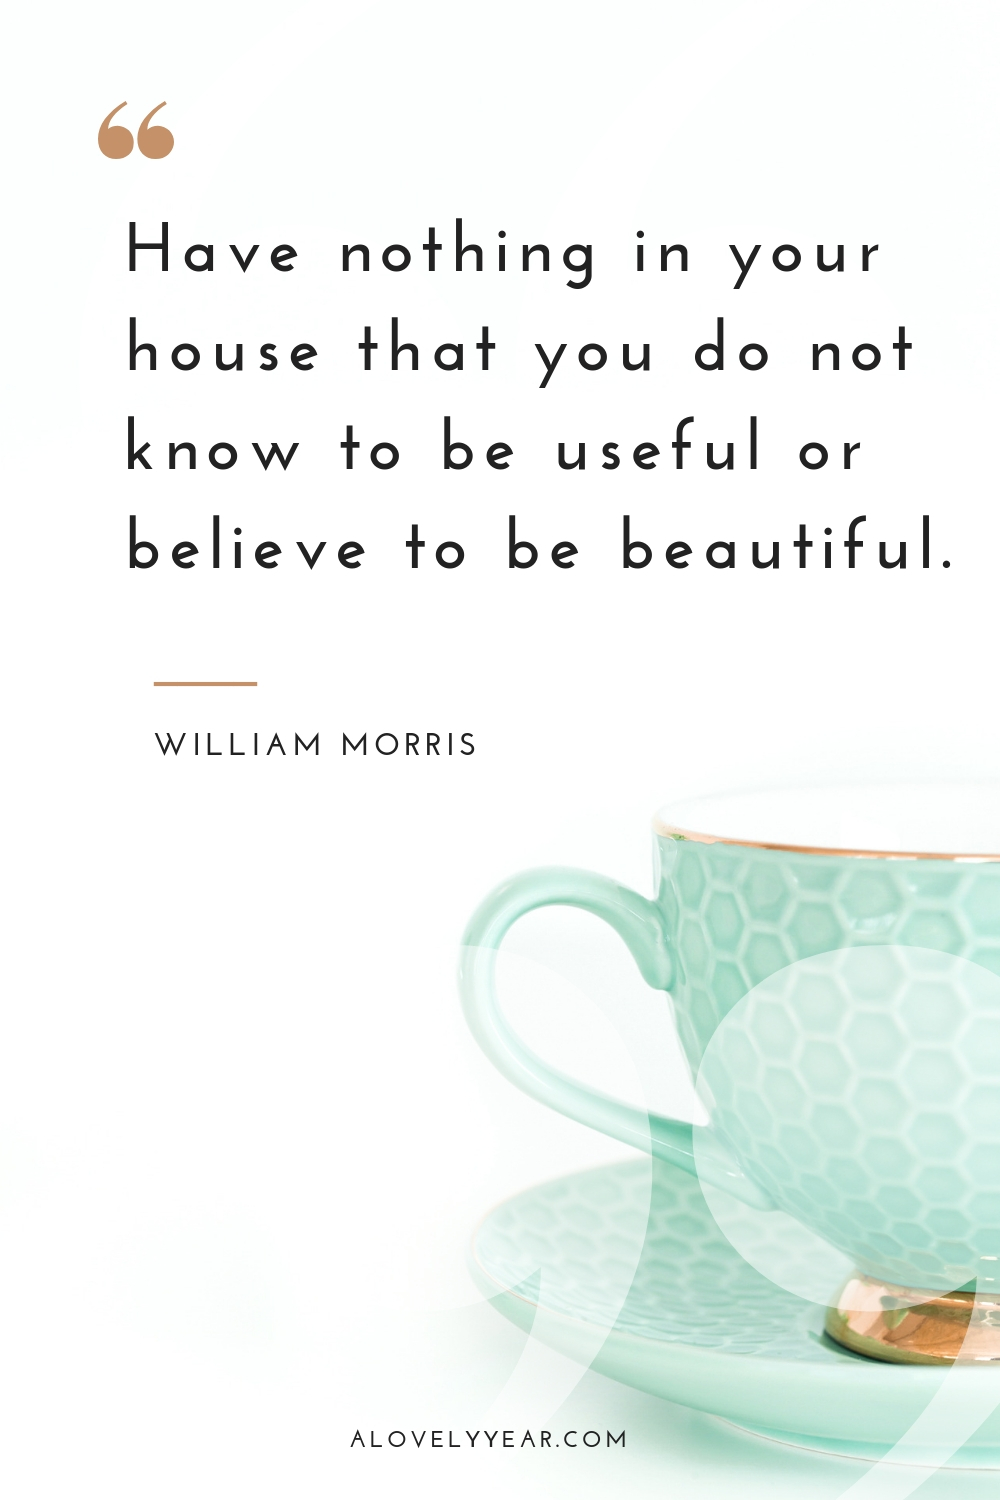 Decluttering quotes to inspire you into action | Have nothing in your house that you do not know to be useful or believe to be beautiful - William Morris